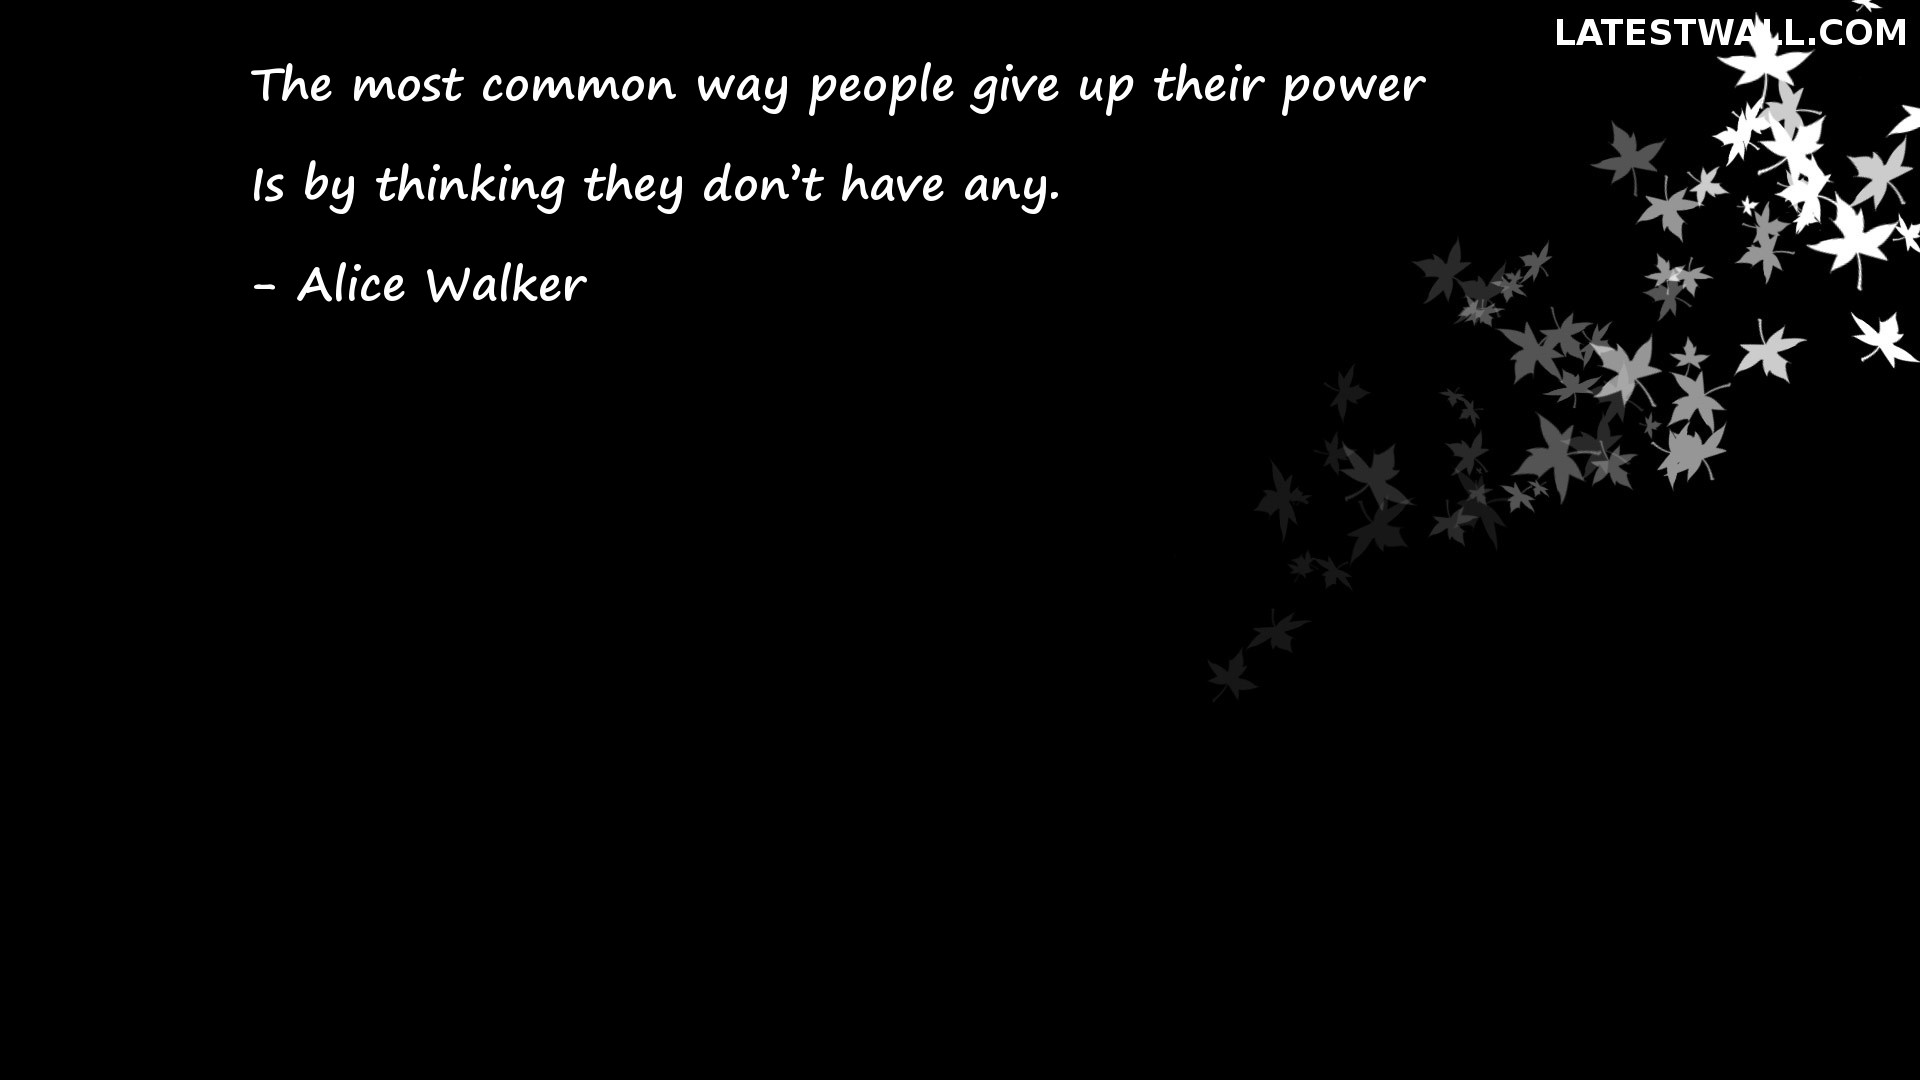 The most common way people give up their power